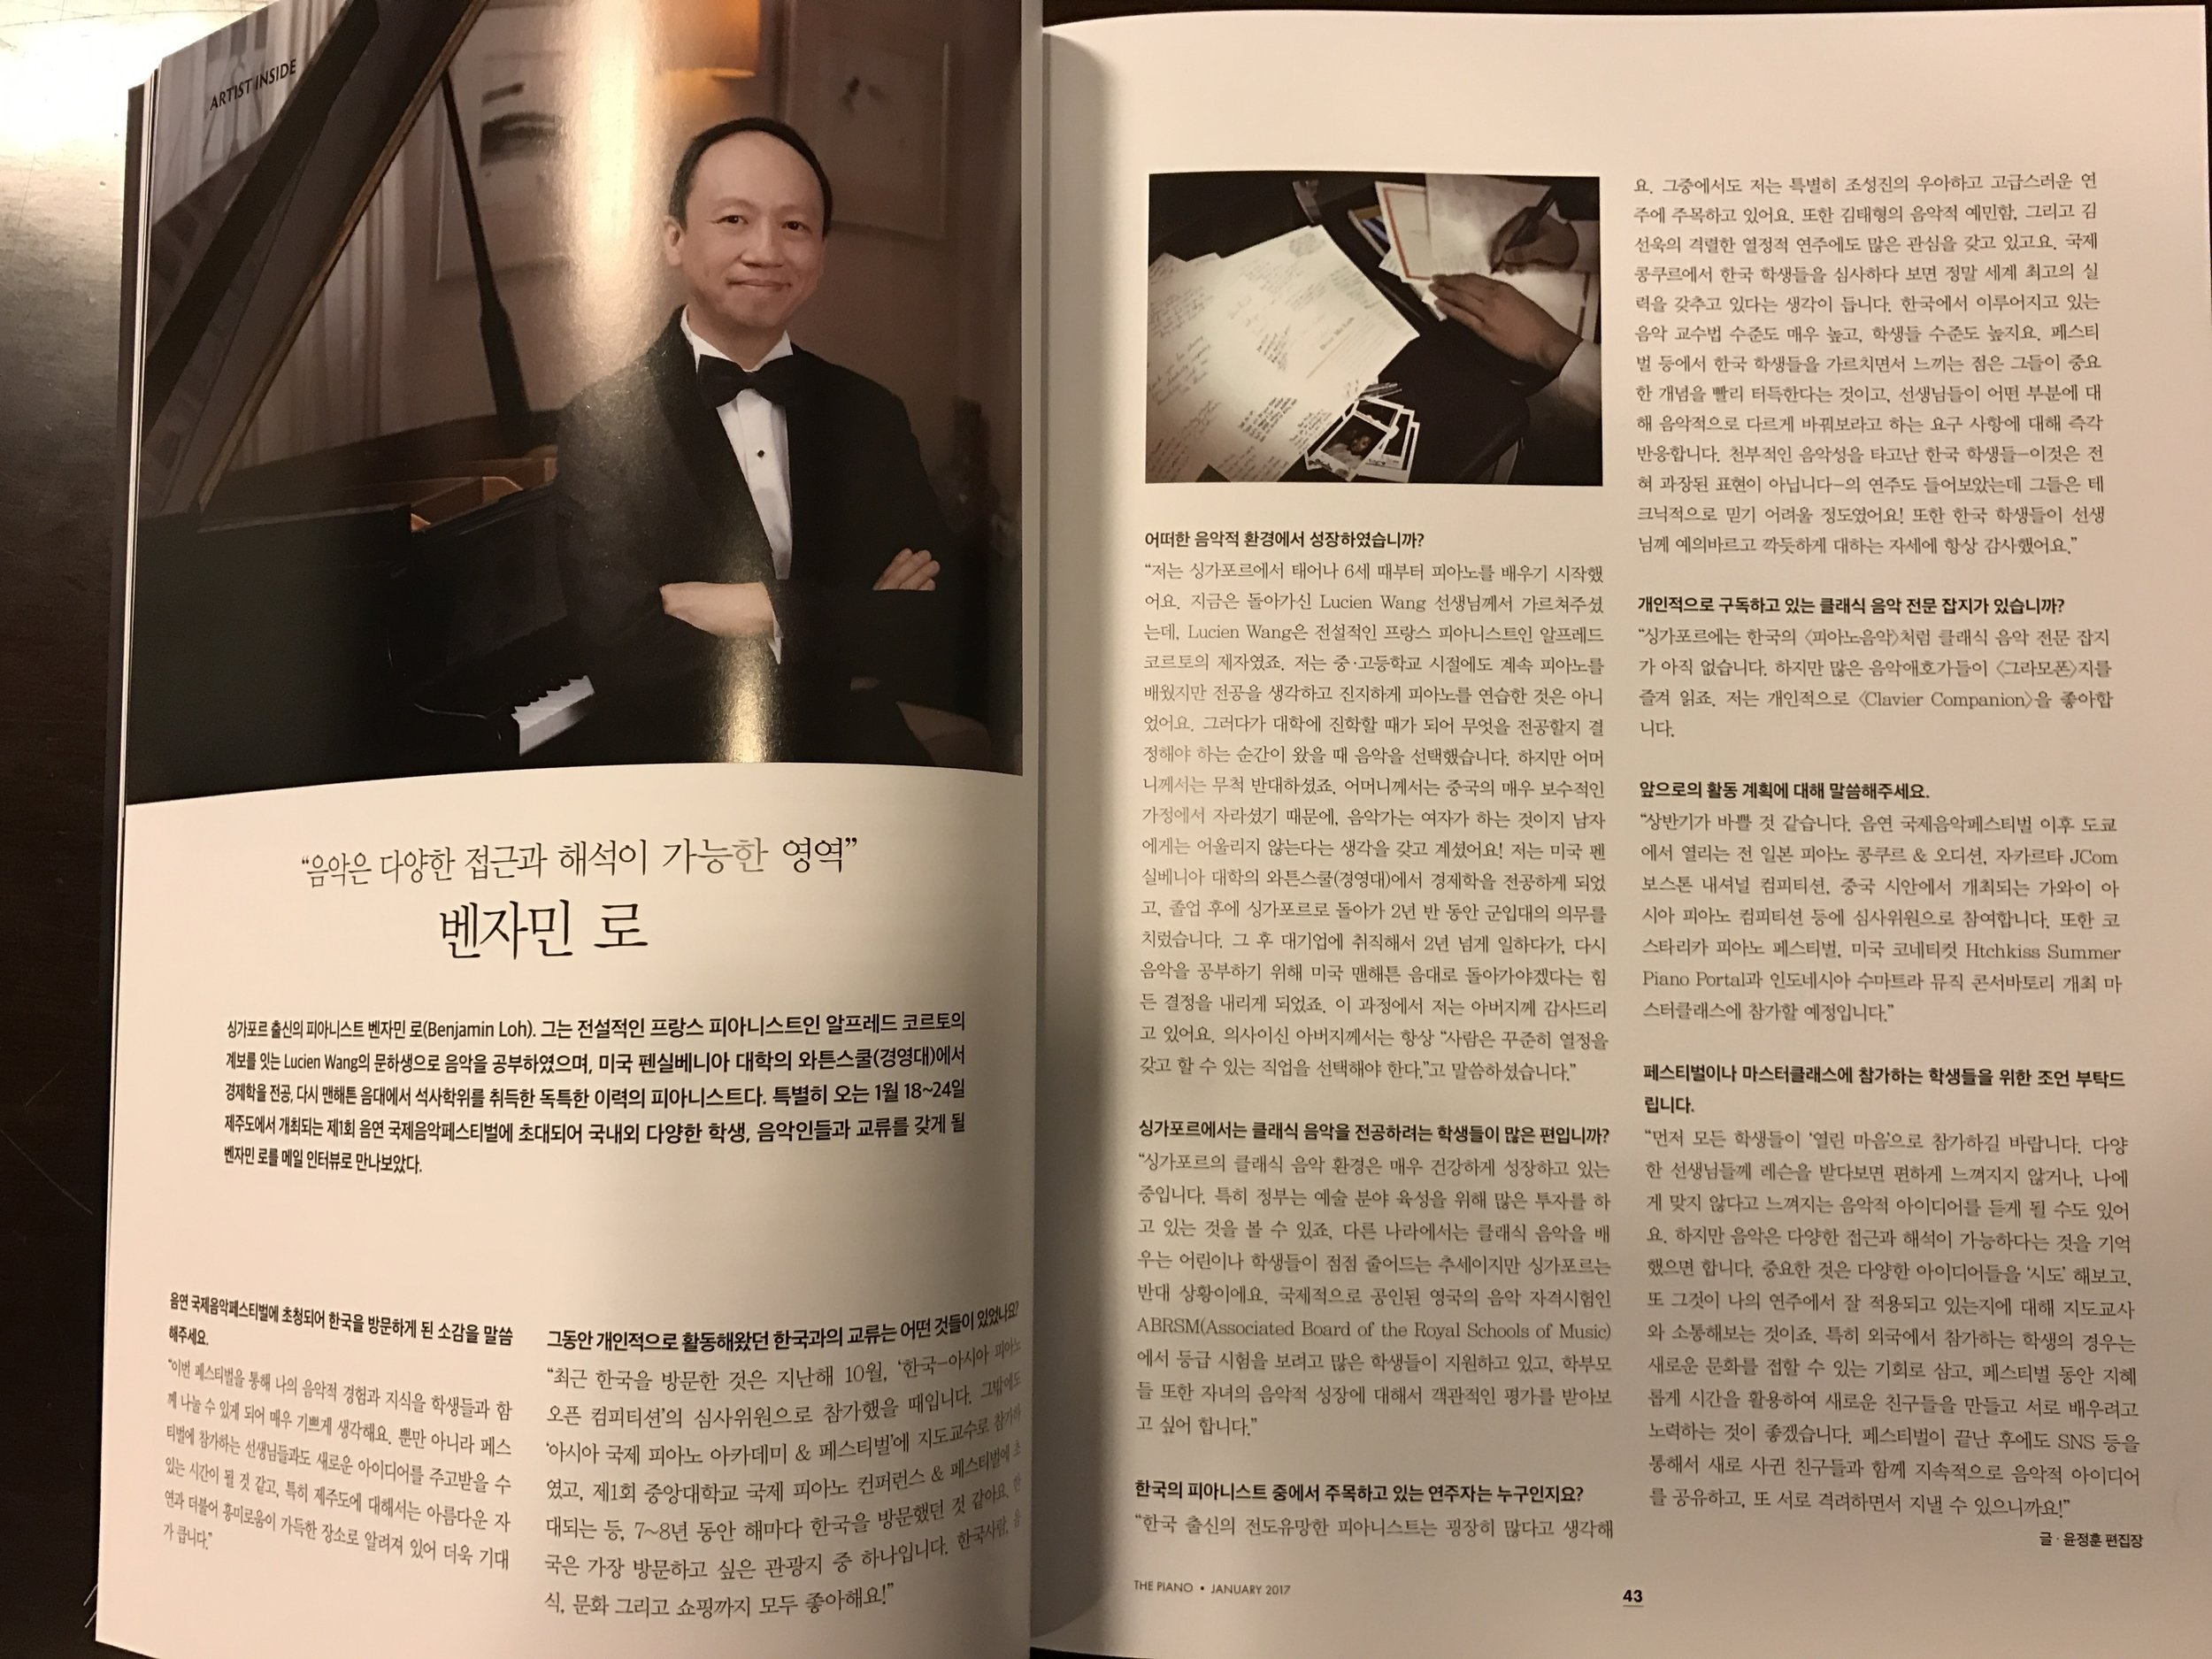 An interview with The Piano magazine